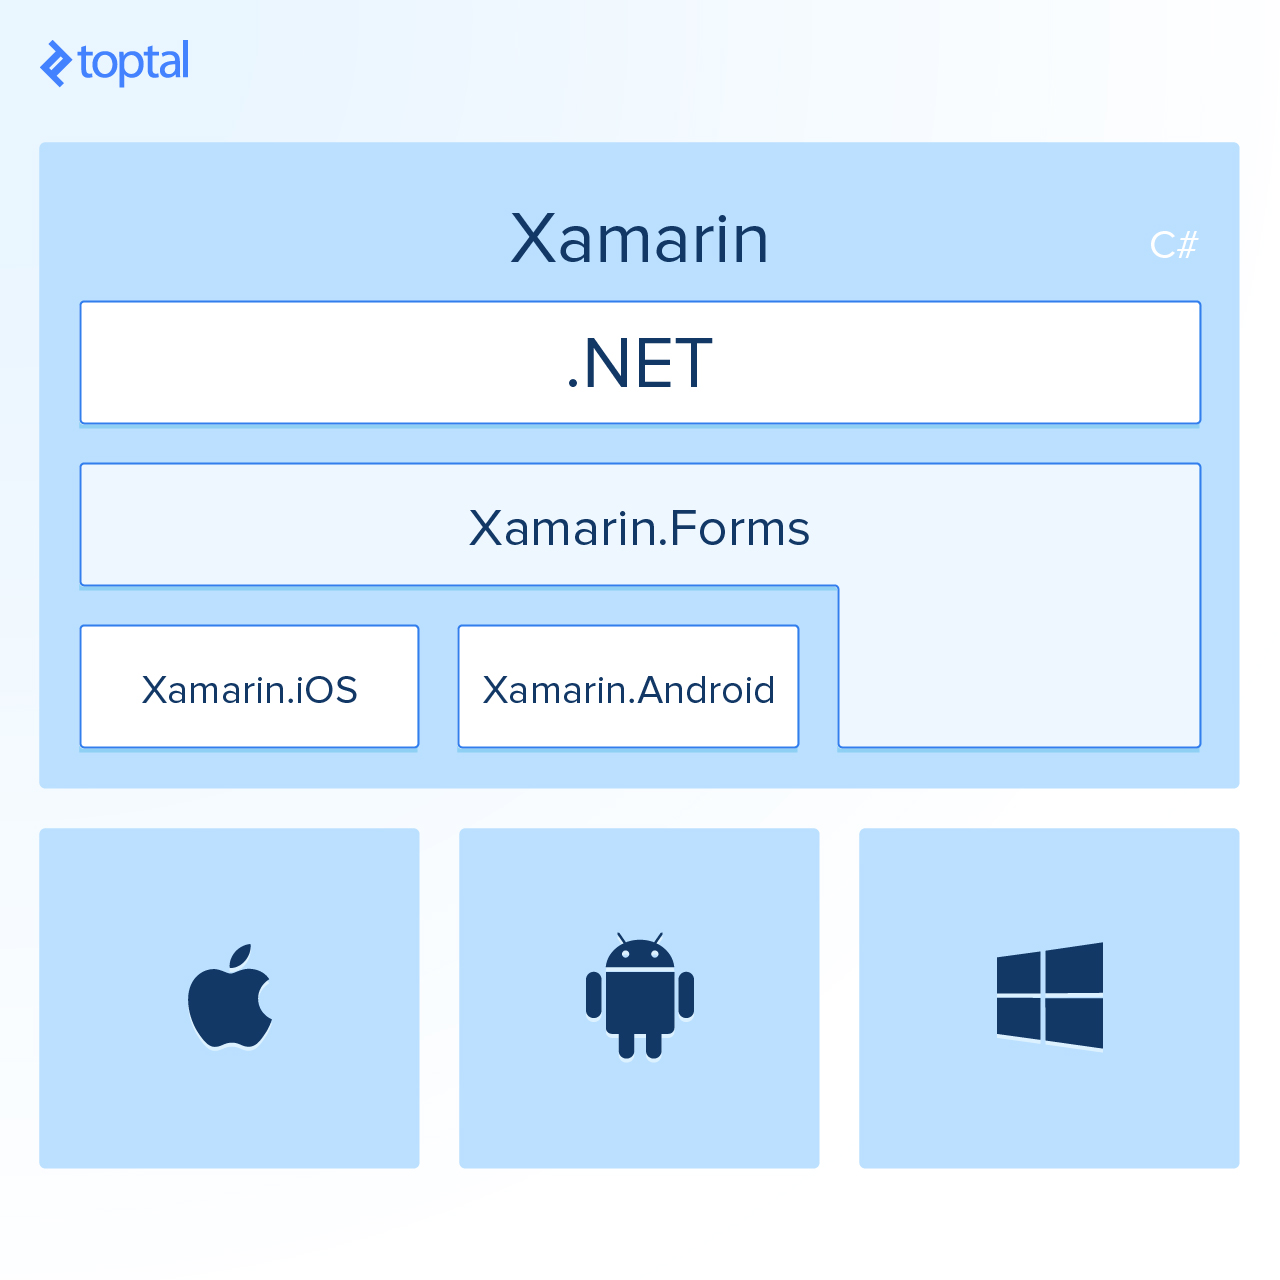 The scope of Xamarin